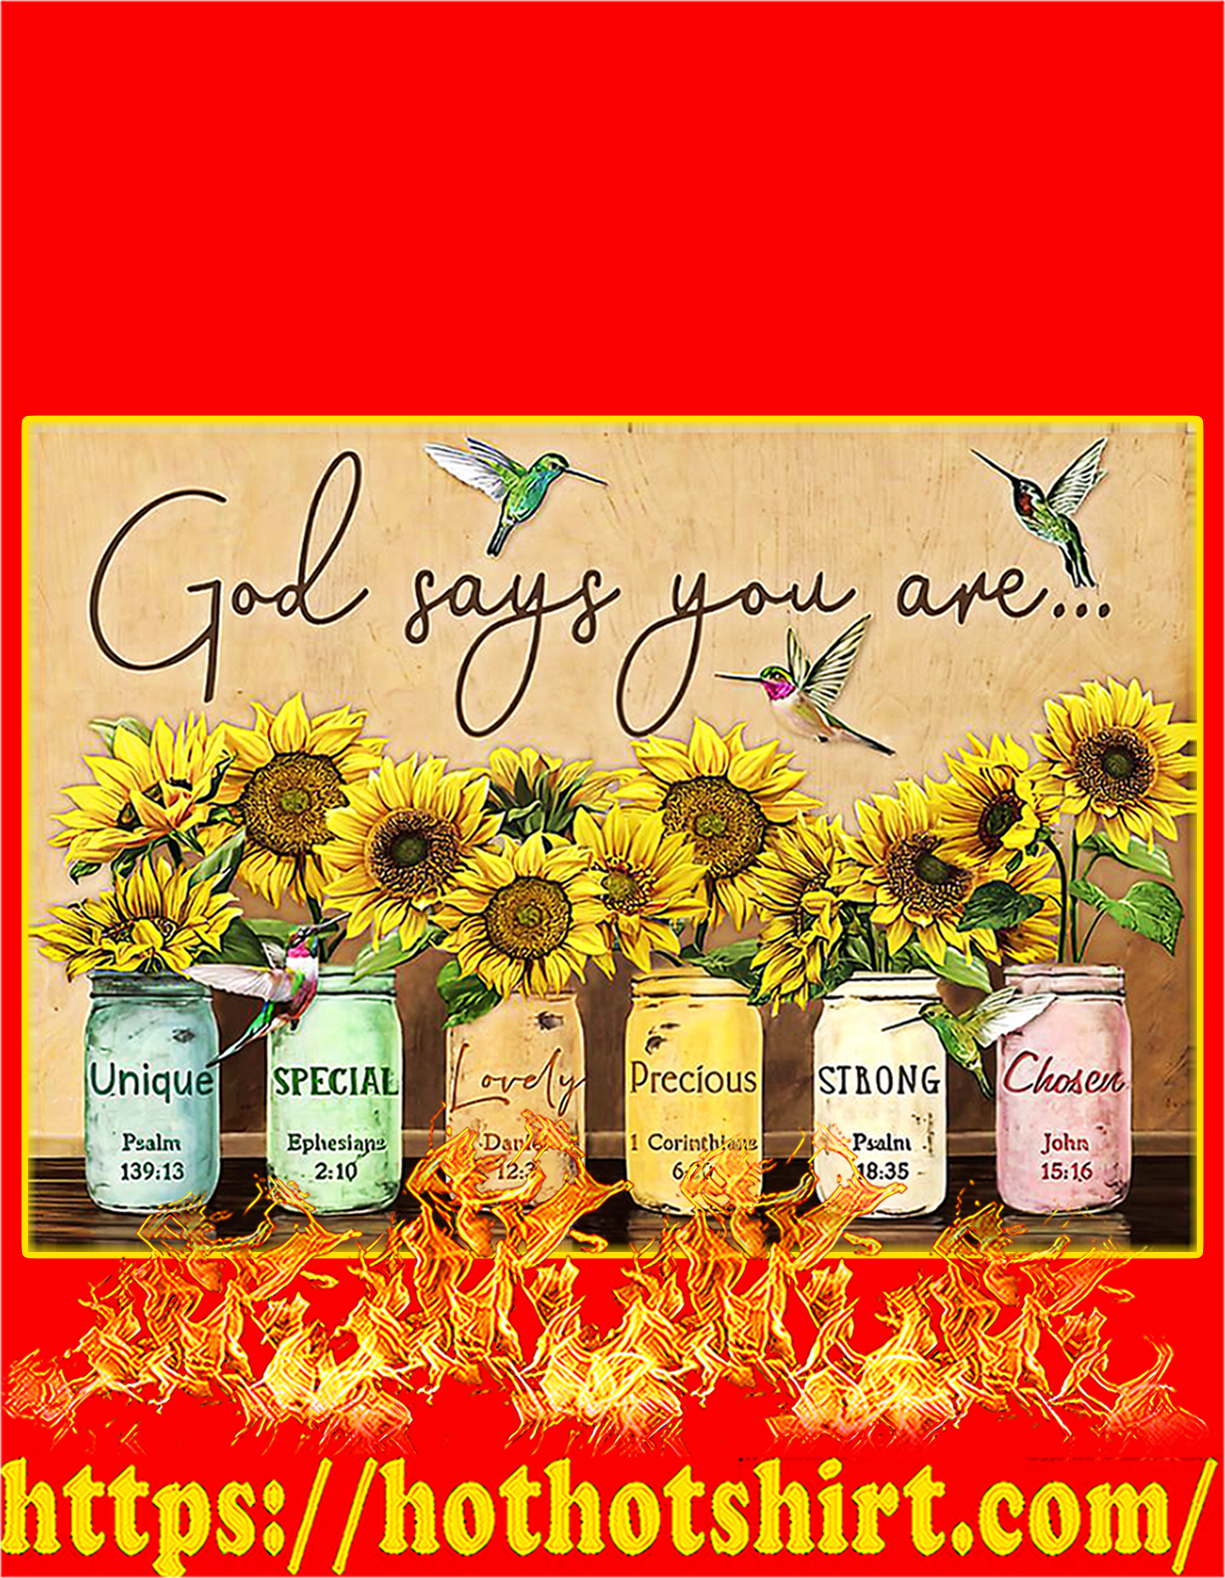 God says you are poster - A4